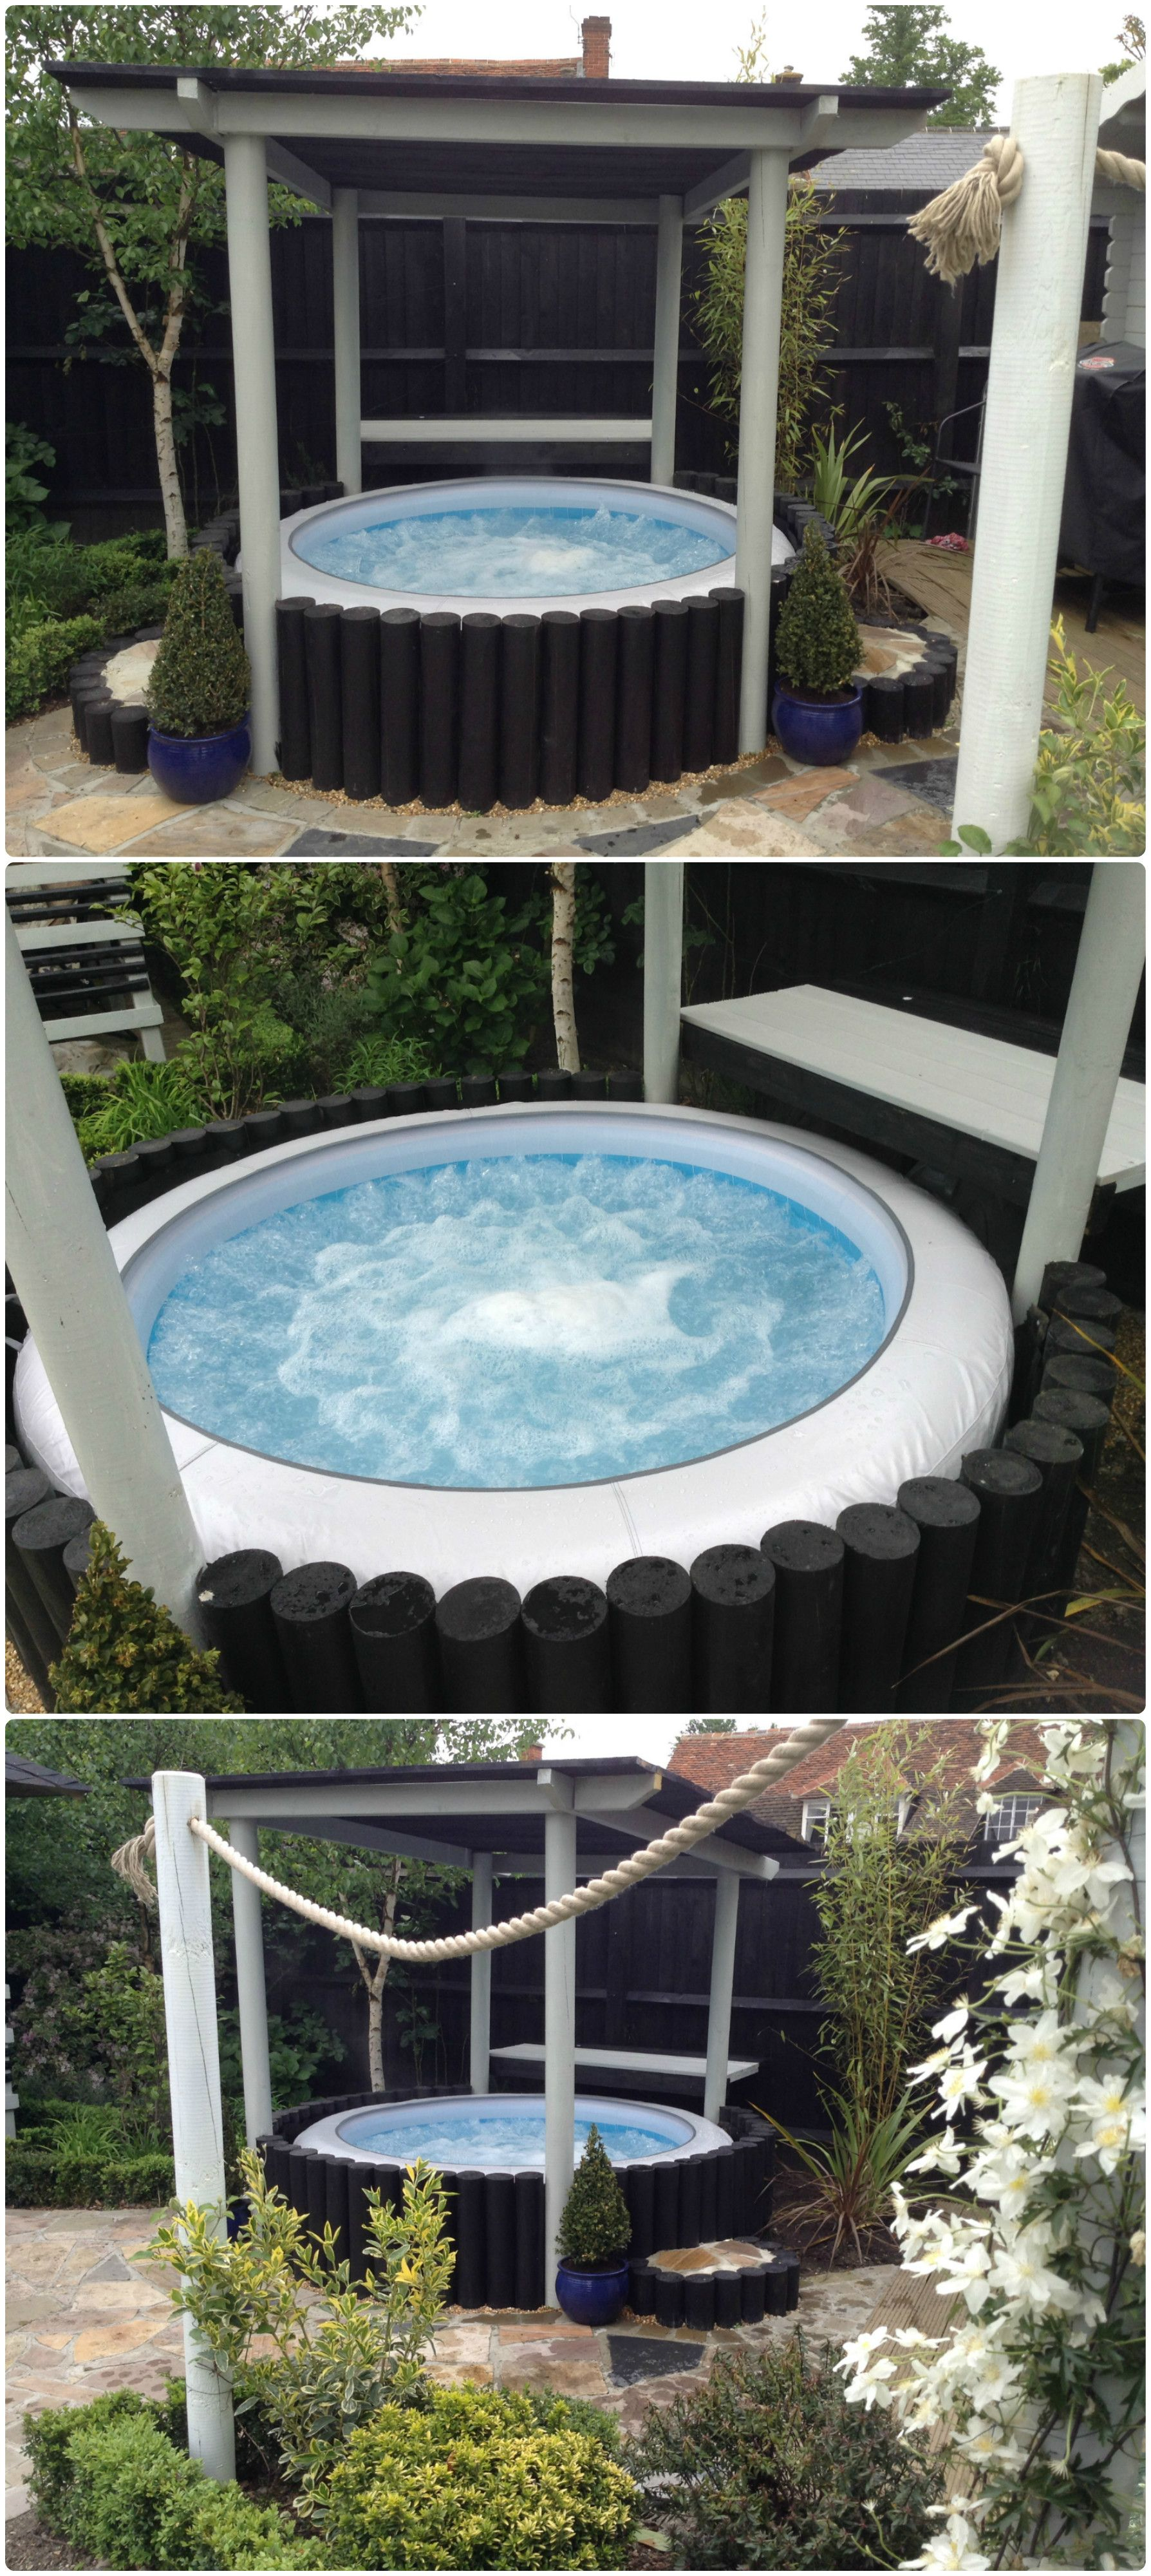 Inflatable Pool Ideas inflatable pool to keep drinks cold great idea for outdoor parties Find This Pin And More On Terrasses Inflatable Hot Tub Surround Idea